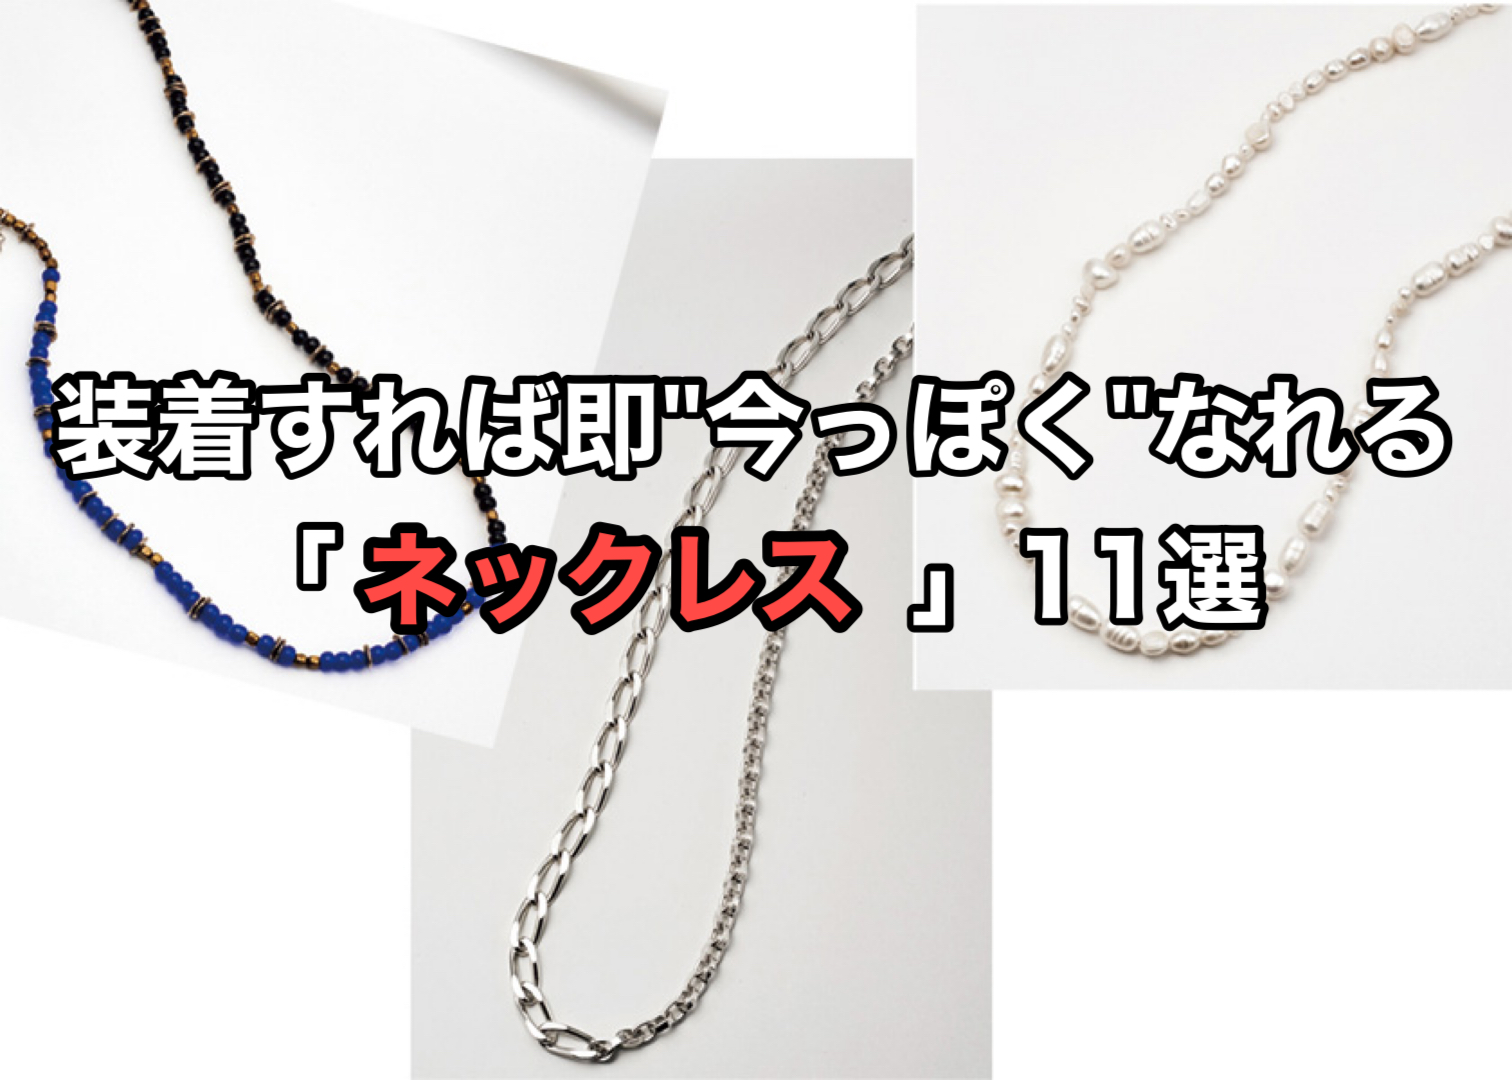 https://fineboys-online.jp/thegear/content/theme/img/org/article/3461/main.jpg?t=1624848129